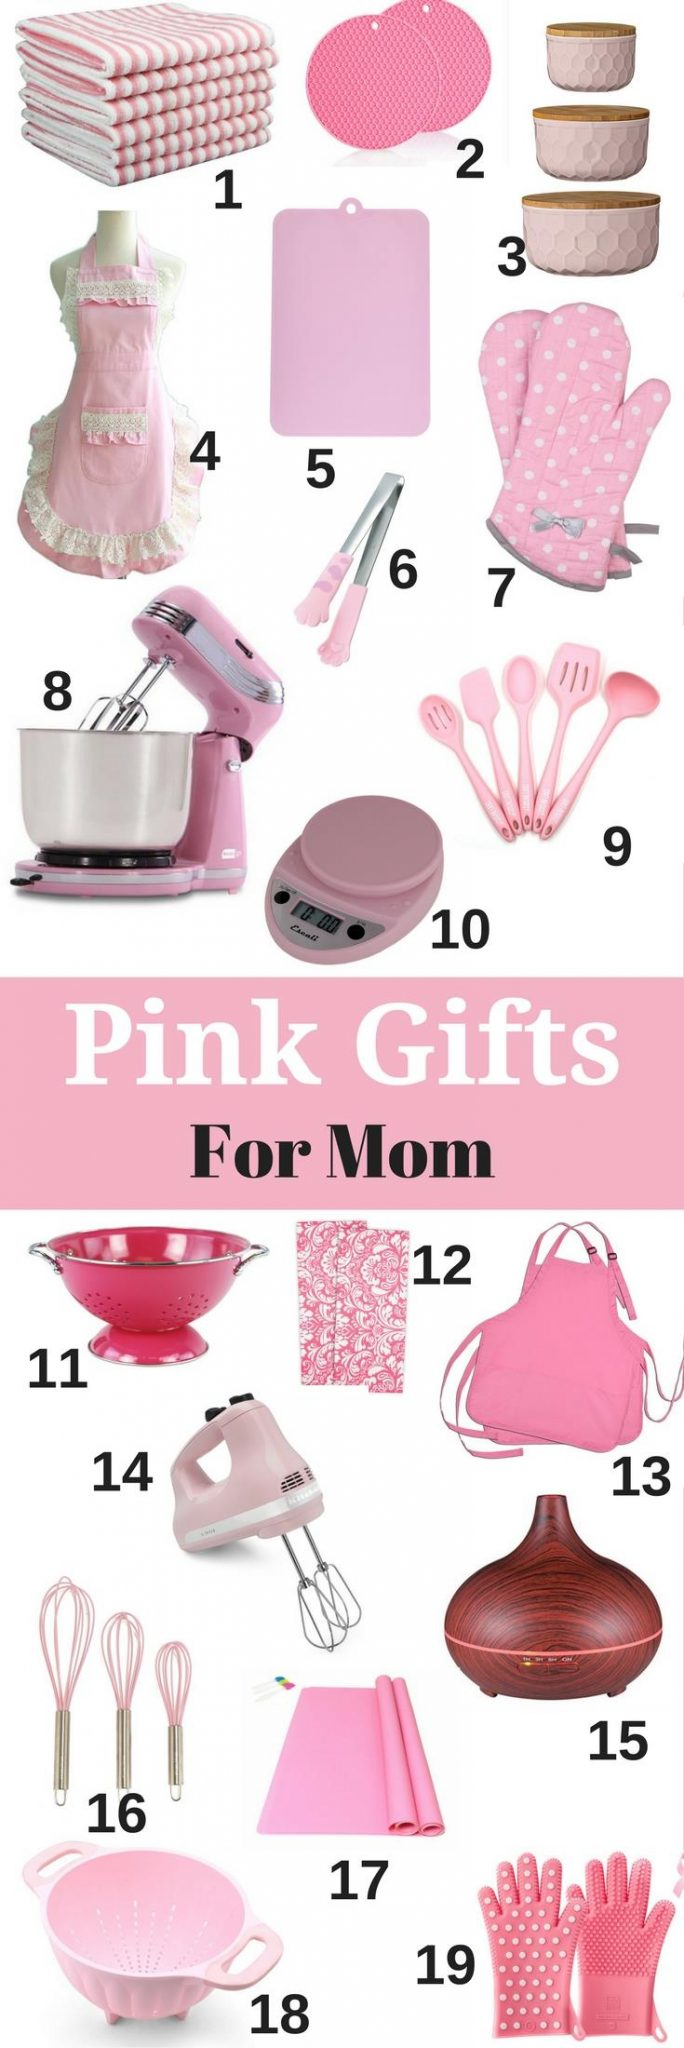 Incroyable Gifts For Mom   Beautiful Pink Presents For Motheru0027s Day, Birthday Or A  Holiday Gift